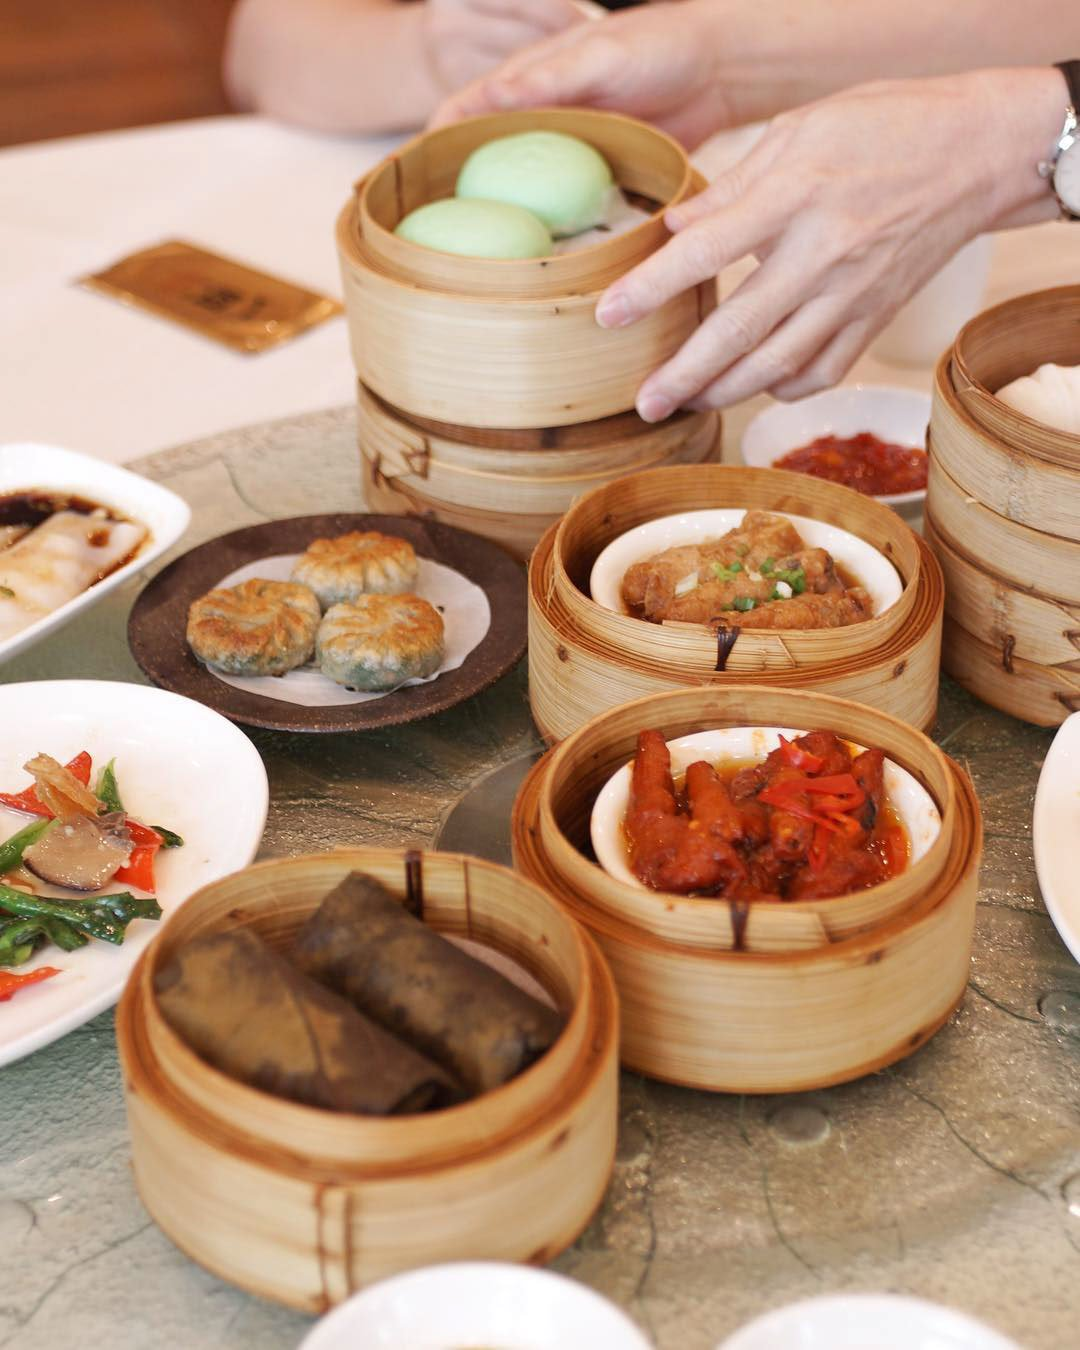 Chinese Food Spots - Swatow Garden